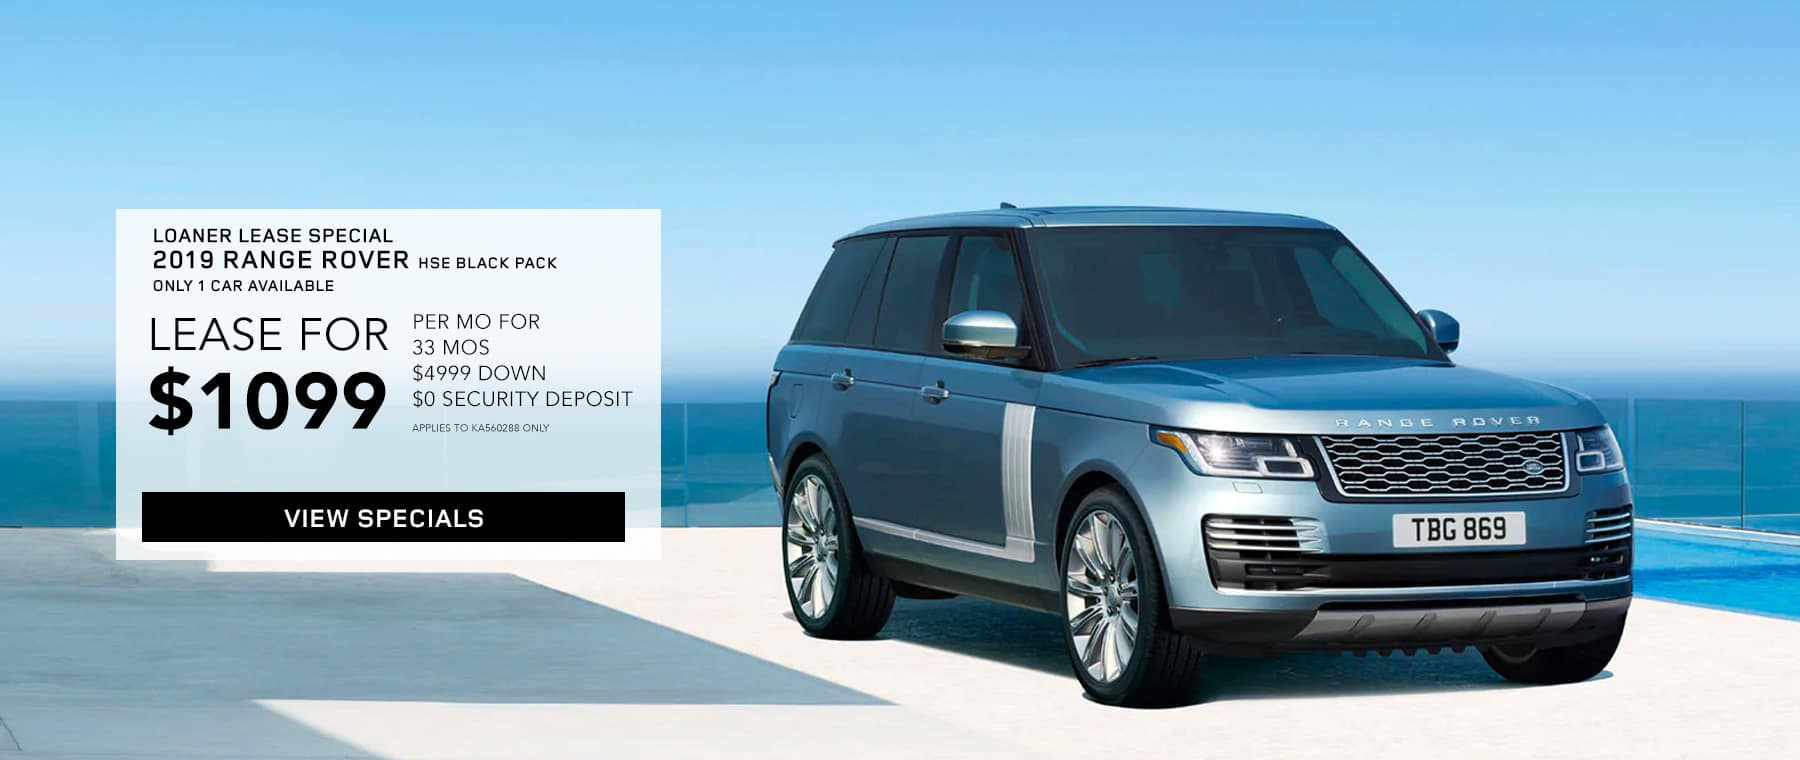 2019 Range Rover HSE with Black Pack